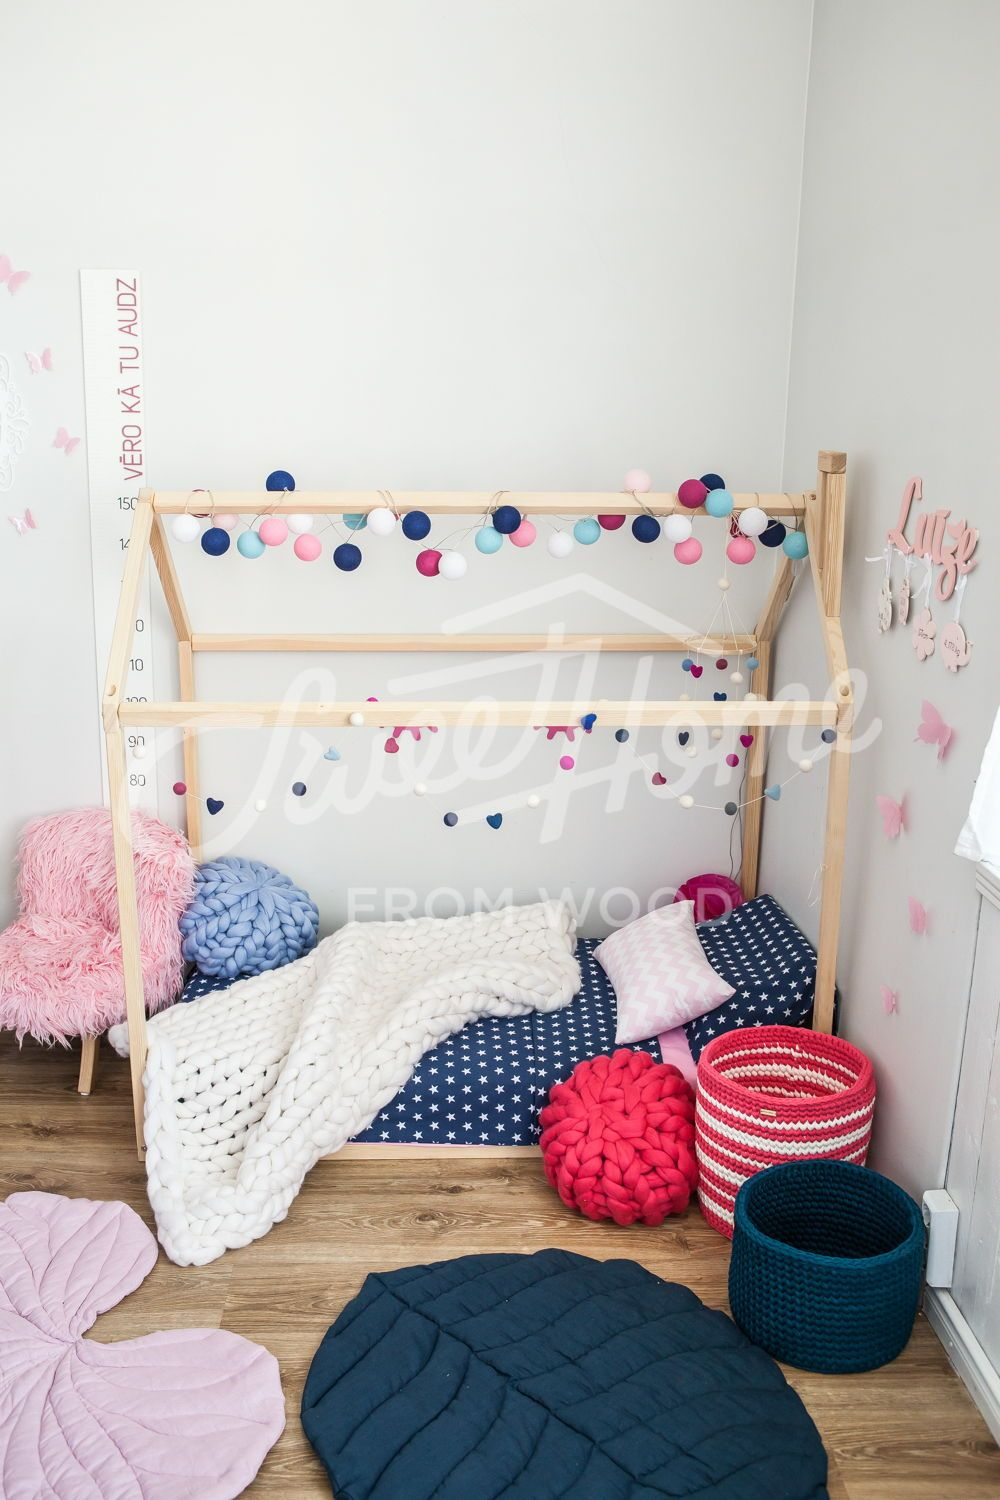 House Bed Toddler Bed House Montessori Toys Montessori